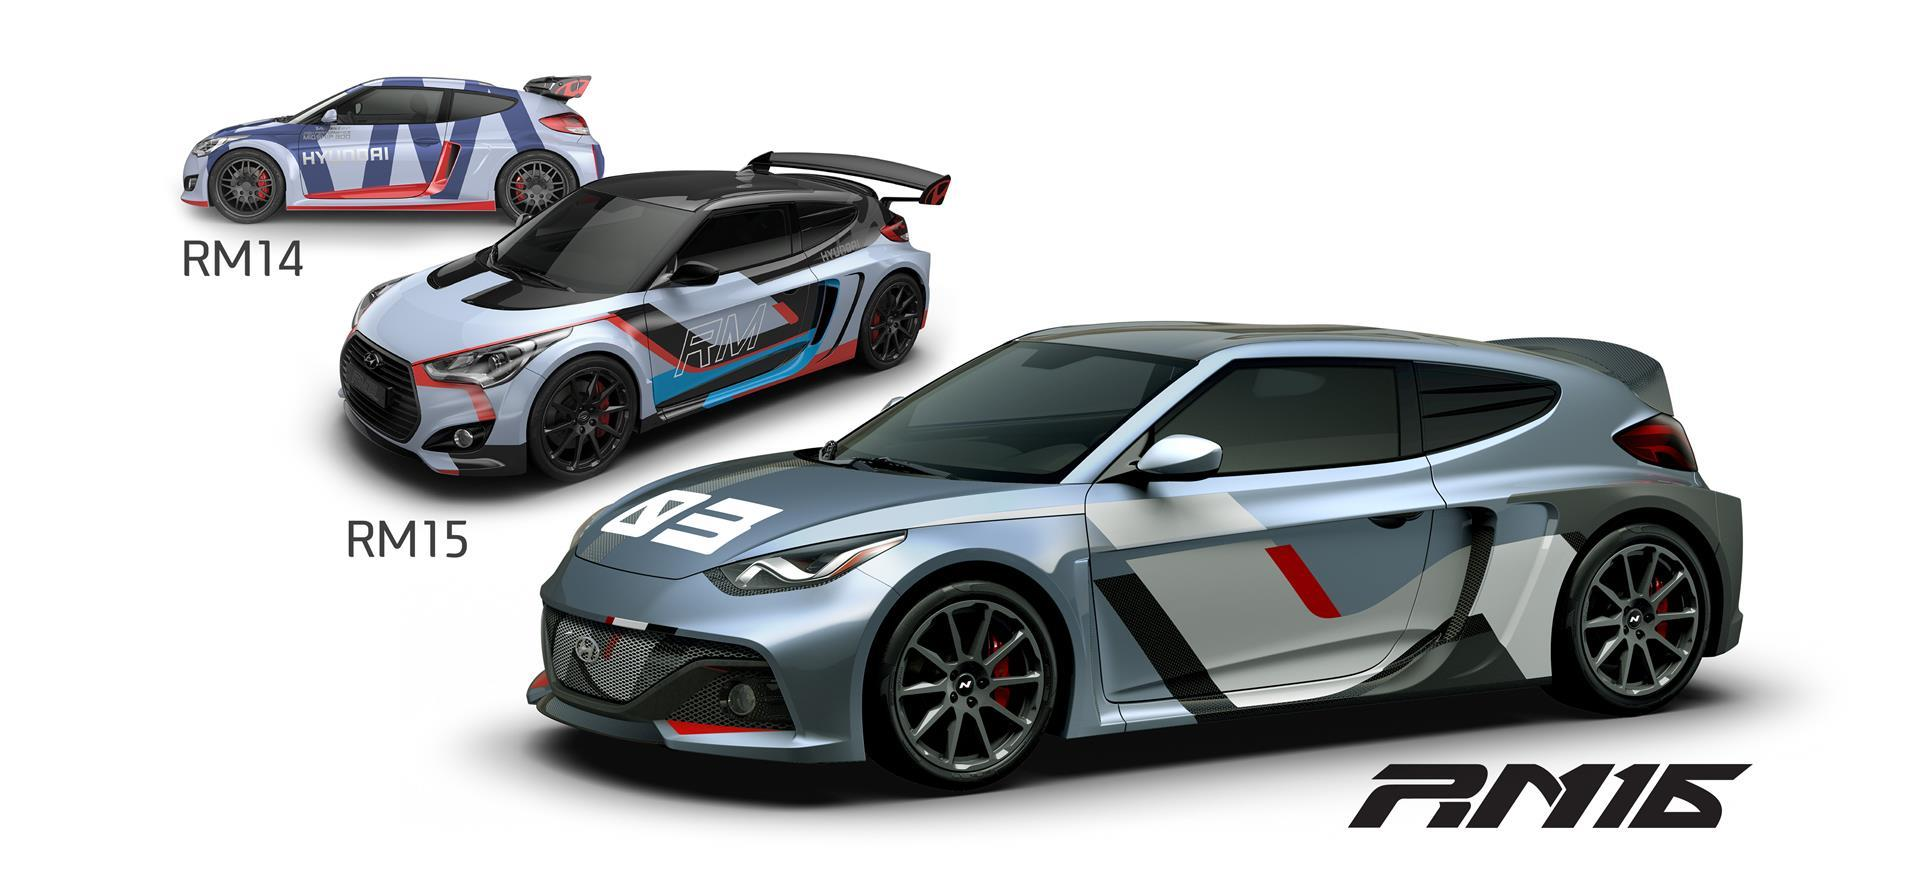 Hyundai RM16 Concept pictures and wallpaper